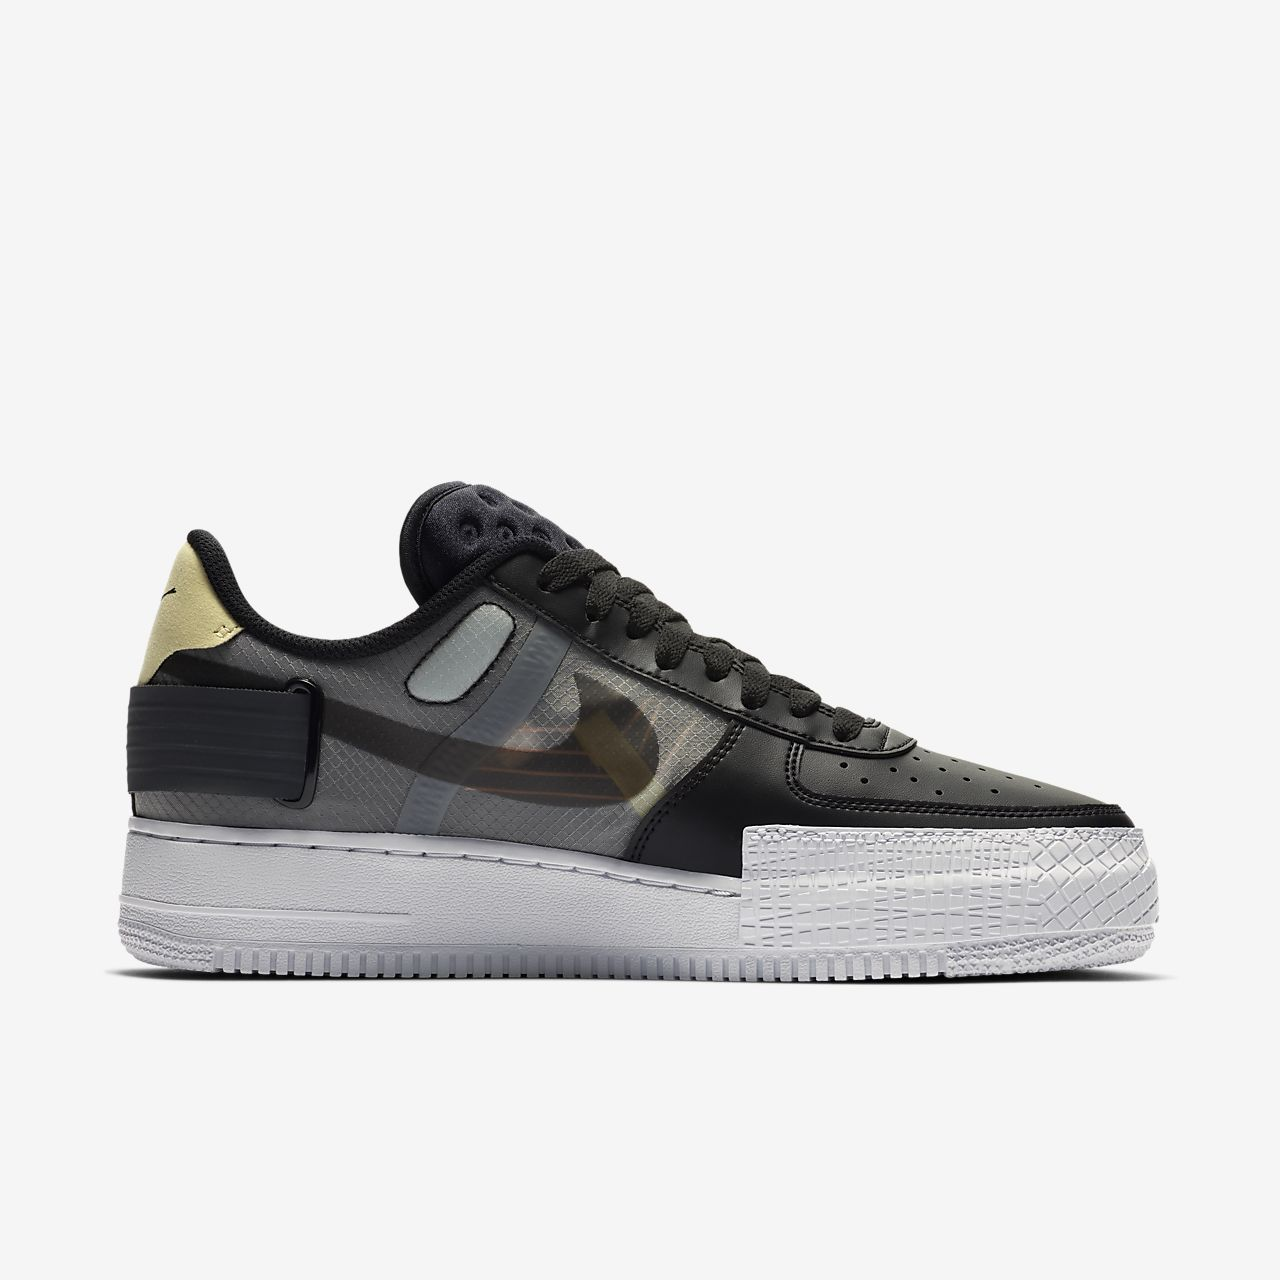 Chaussure Nike Air Force 1 Type pour Homme